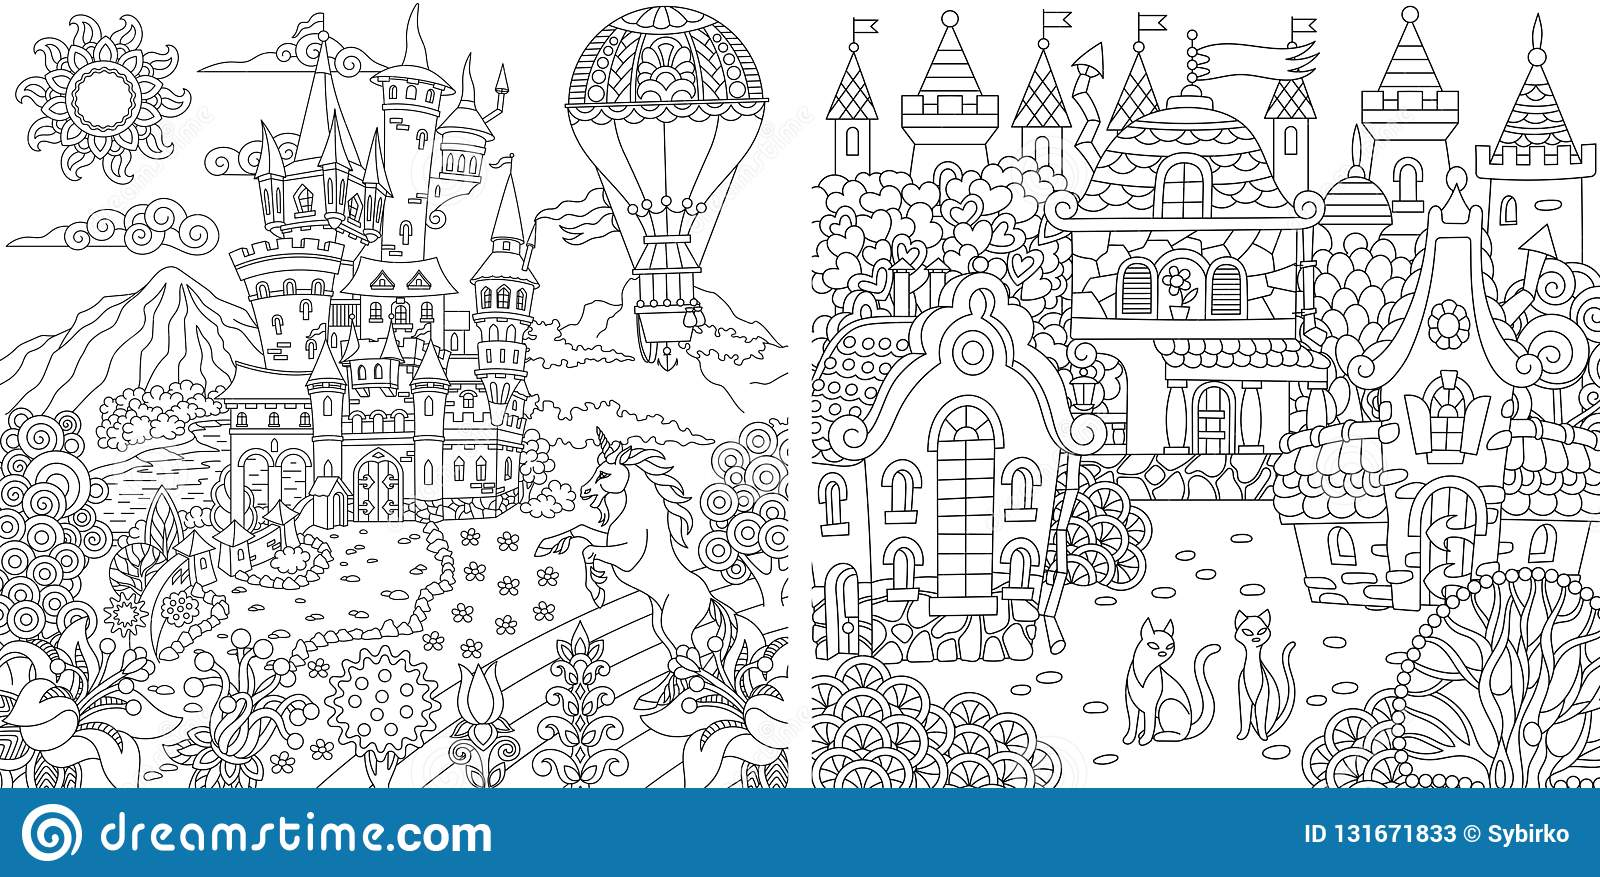 Coloring pages coloring book for adults colouring pictures with fantasy castles and houses drawn